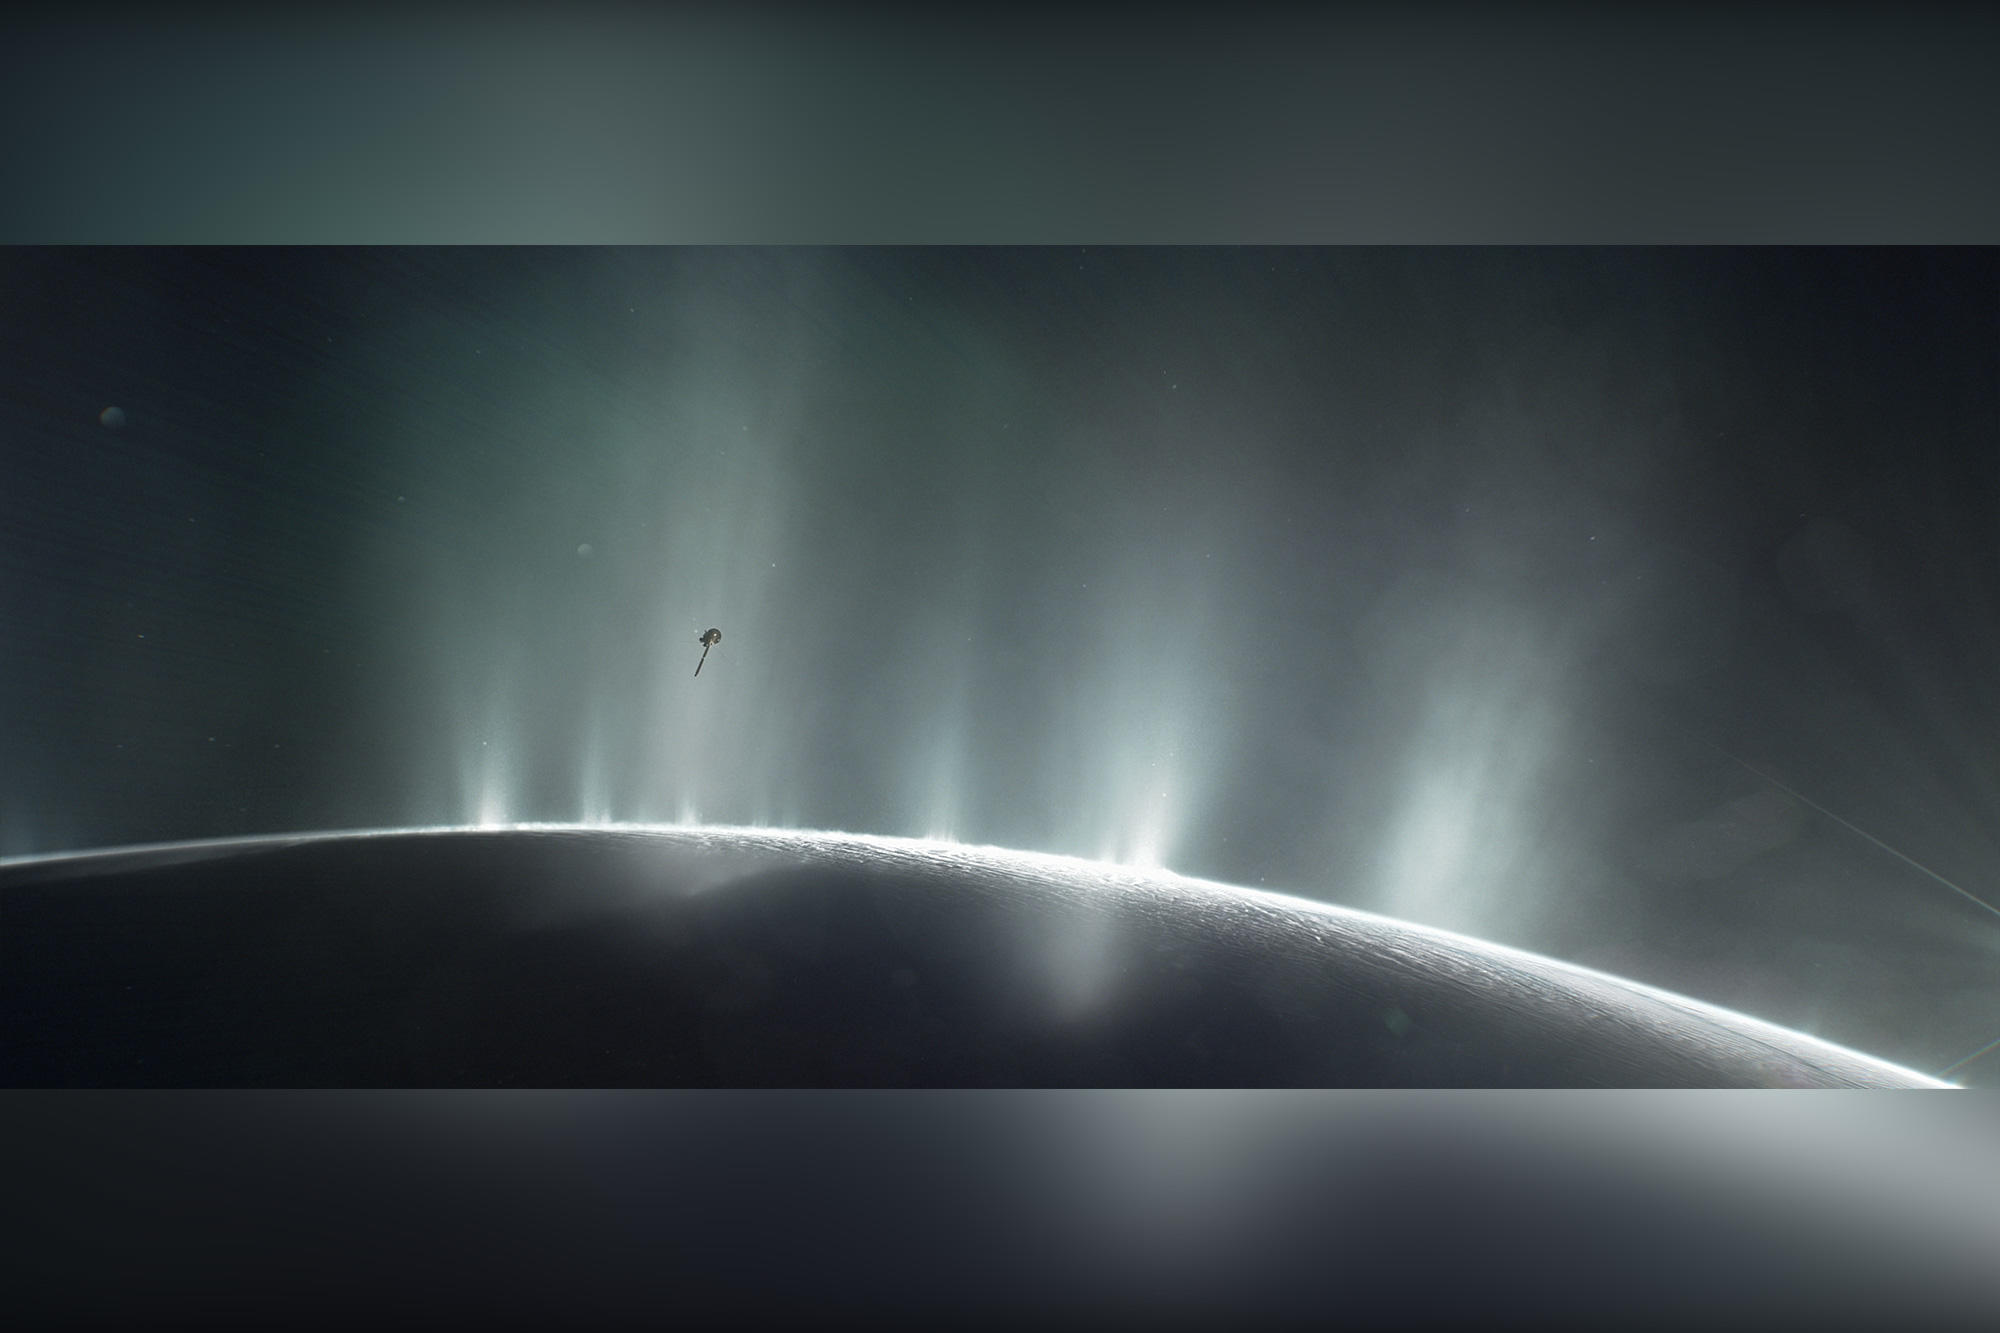 An artist's rendering shows Cassini diving through the Enceladus plume in 2015.